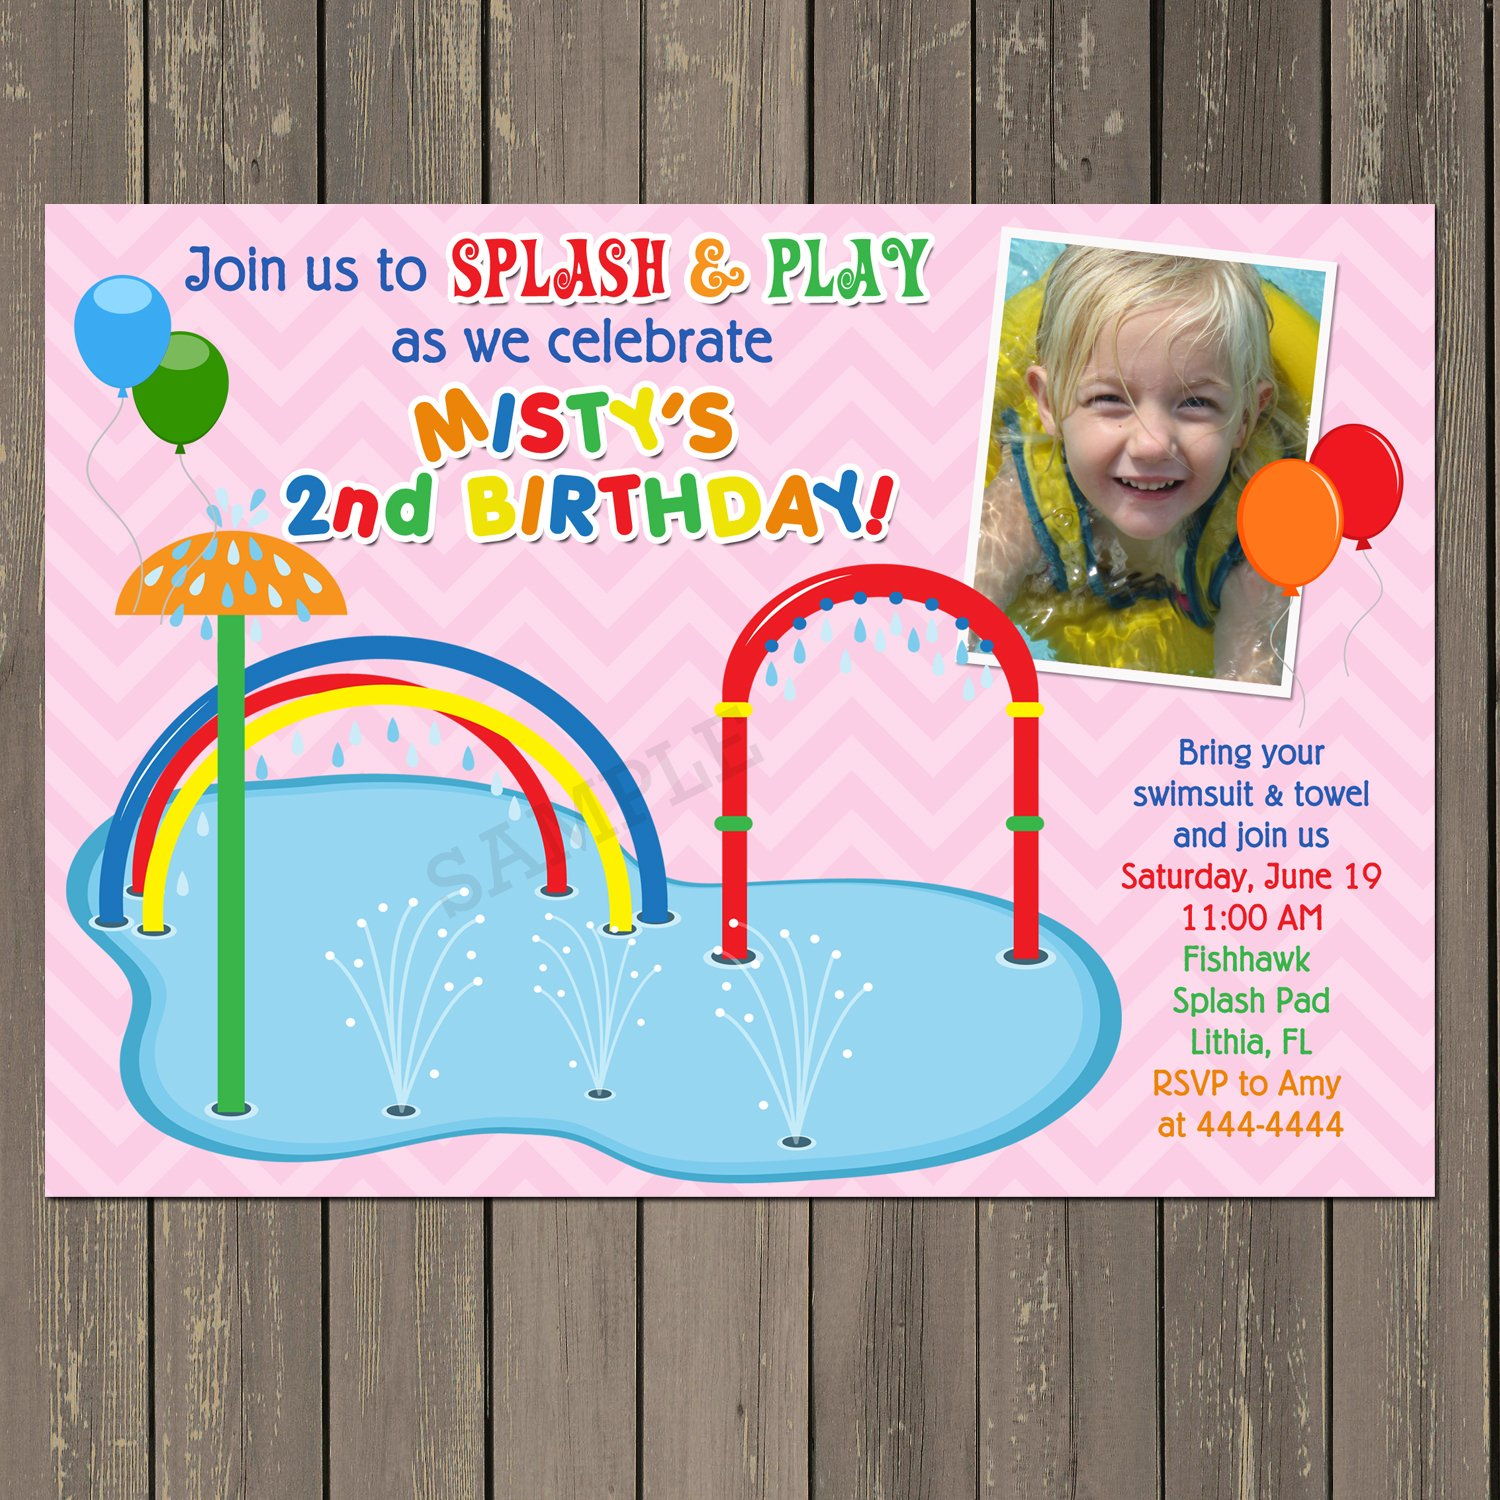 Amazon Splash Pad Spray Park Water Fun Birthday Invitation Pool Party Summer In Blue Or Pink Handmade